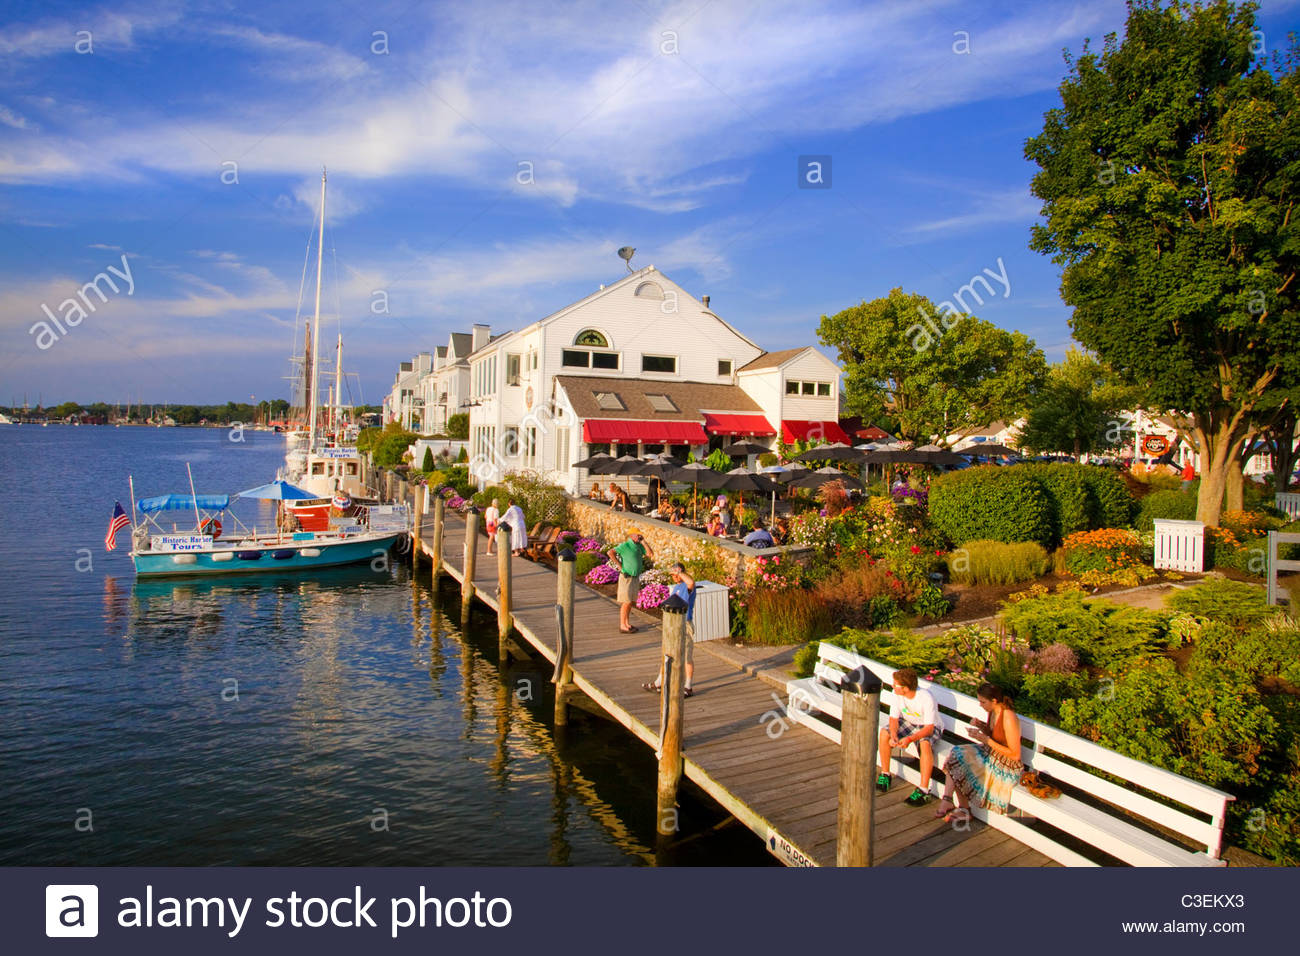 [S&P Oyster Company Restaurant] and dock. Downtown Mystic, Connecticut. - Stock Image